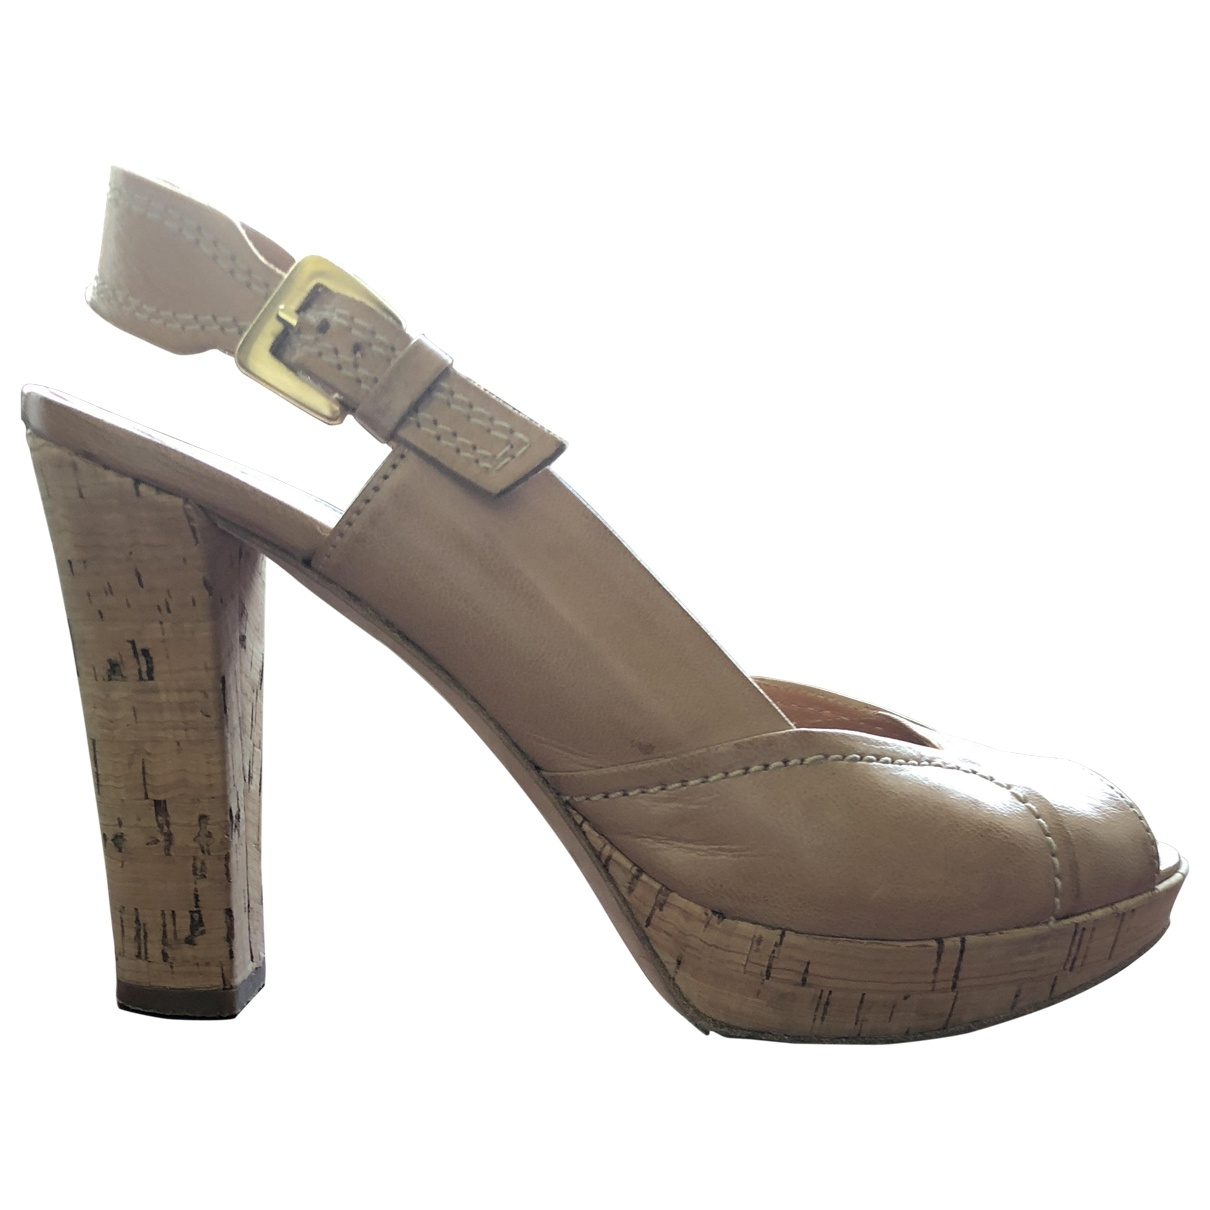 Baldinini \N Beige Leather Sandals for Women 39 EU